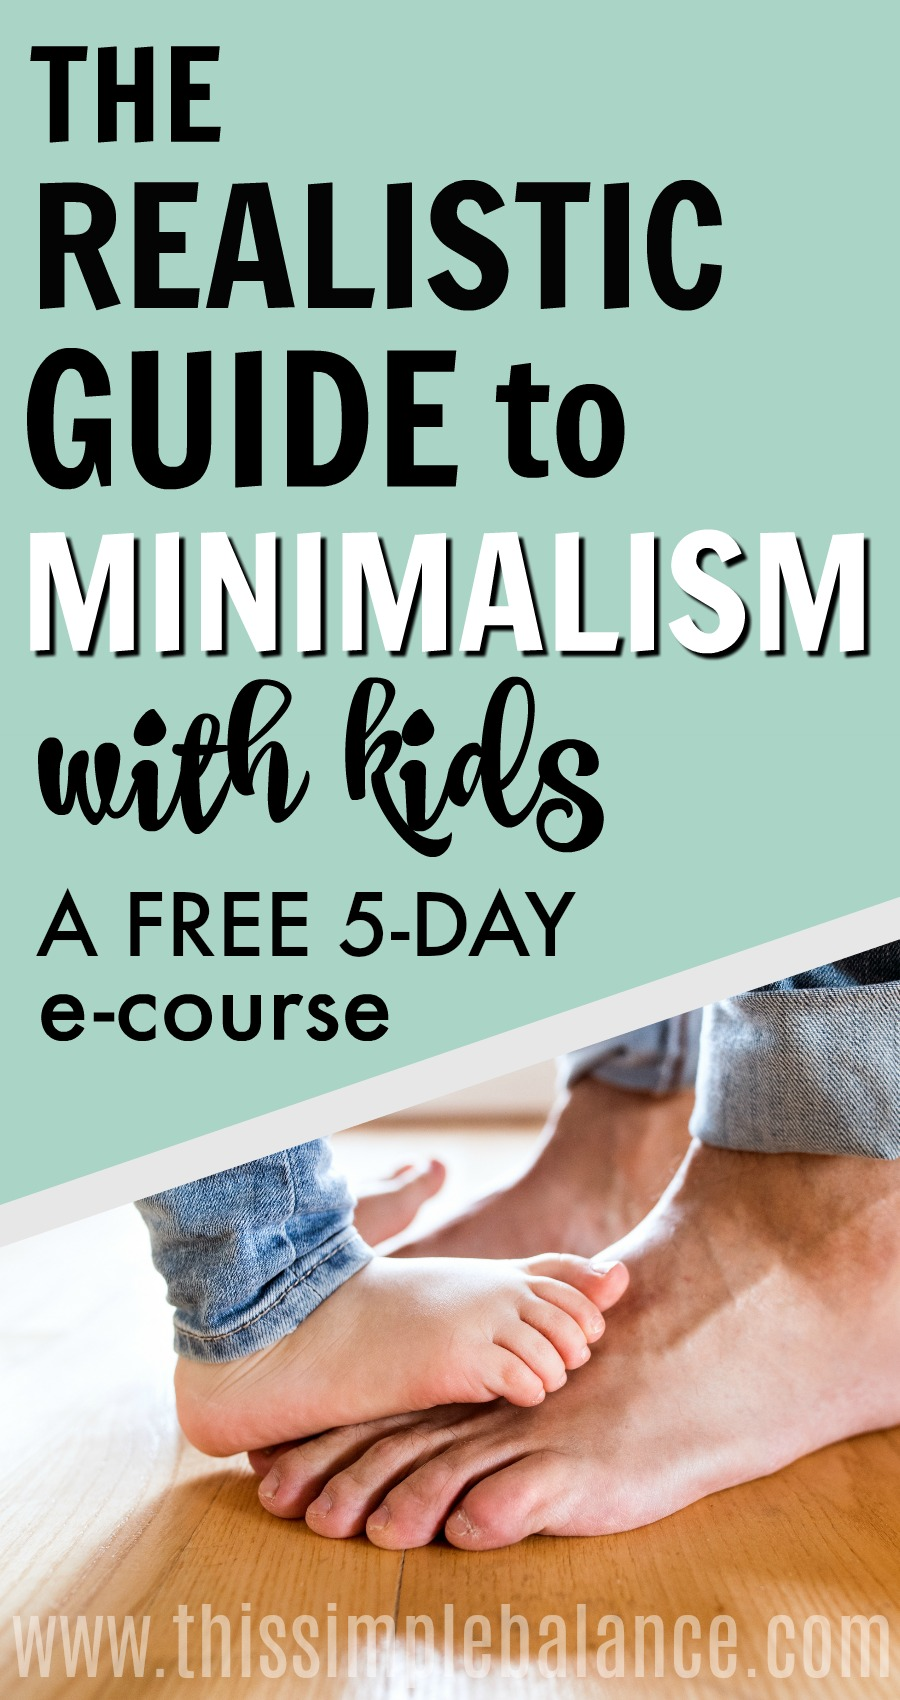 Minimalism with kids can be complicated and frustrating and messy, but it CAN be done in a healthy way (so your kids don't hate it). Sign up for this 5-day FREE e-course that will help you navigate the complexities of minimalism with kids so you can feel confident moving forward. #minimalismwithkids #minimalist